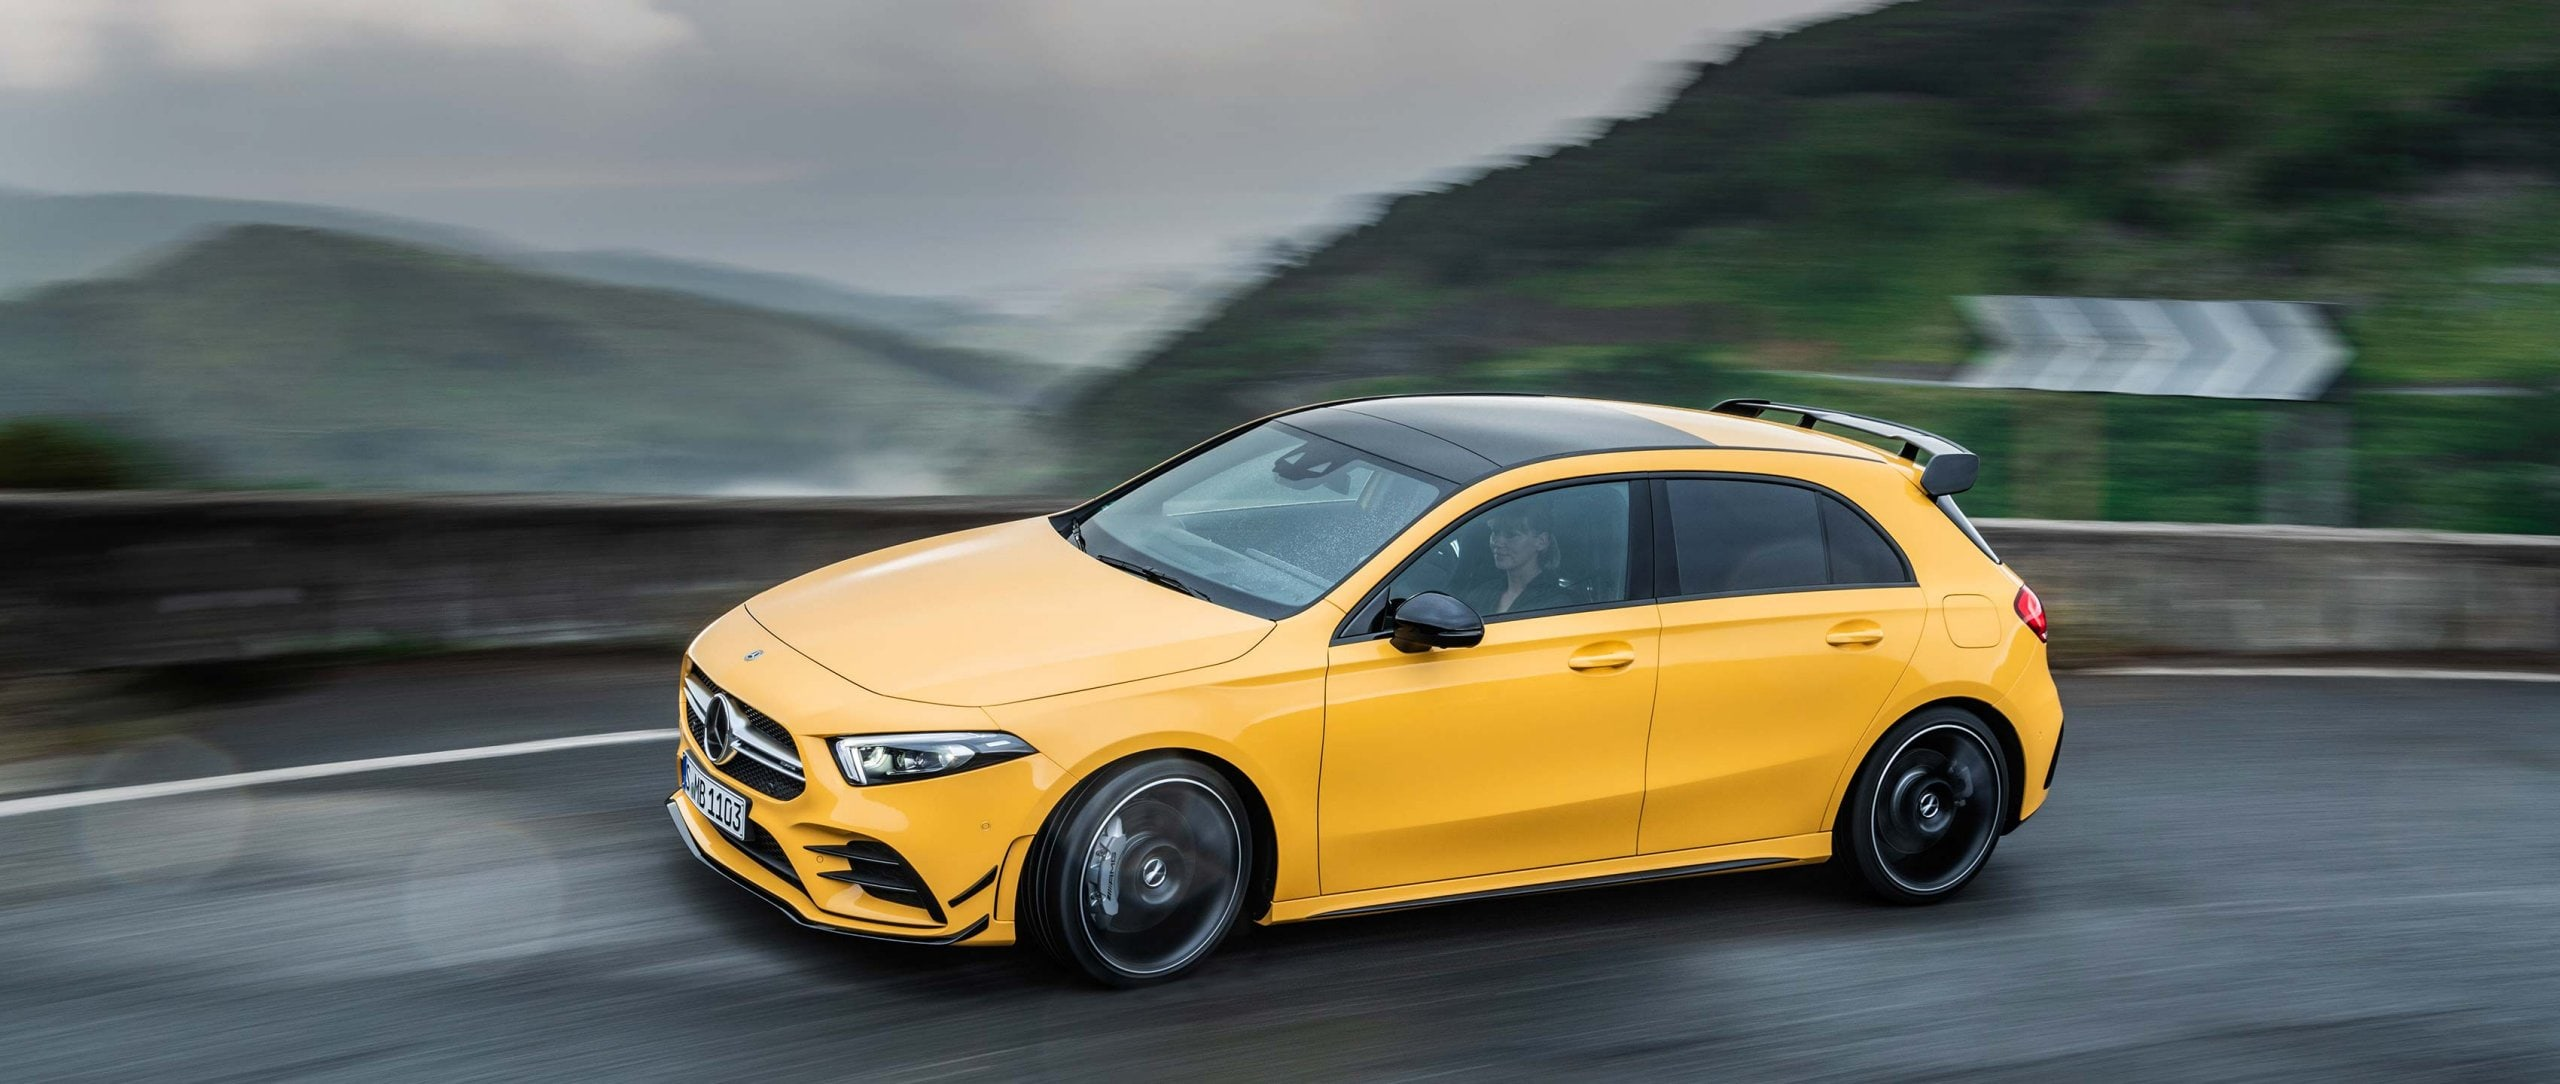 The 2019 Mercedes-AMG A 35 4MATIC (W 177) in sun yellow on a country road in side view.